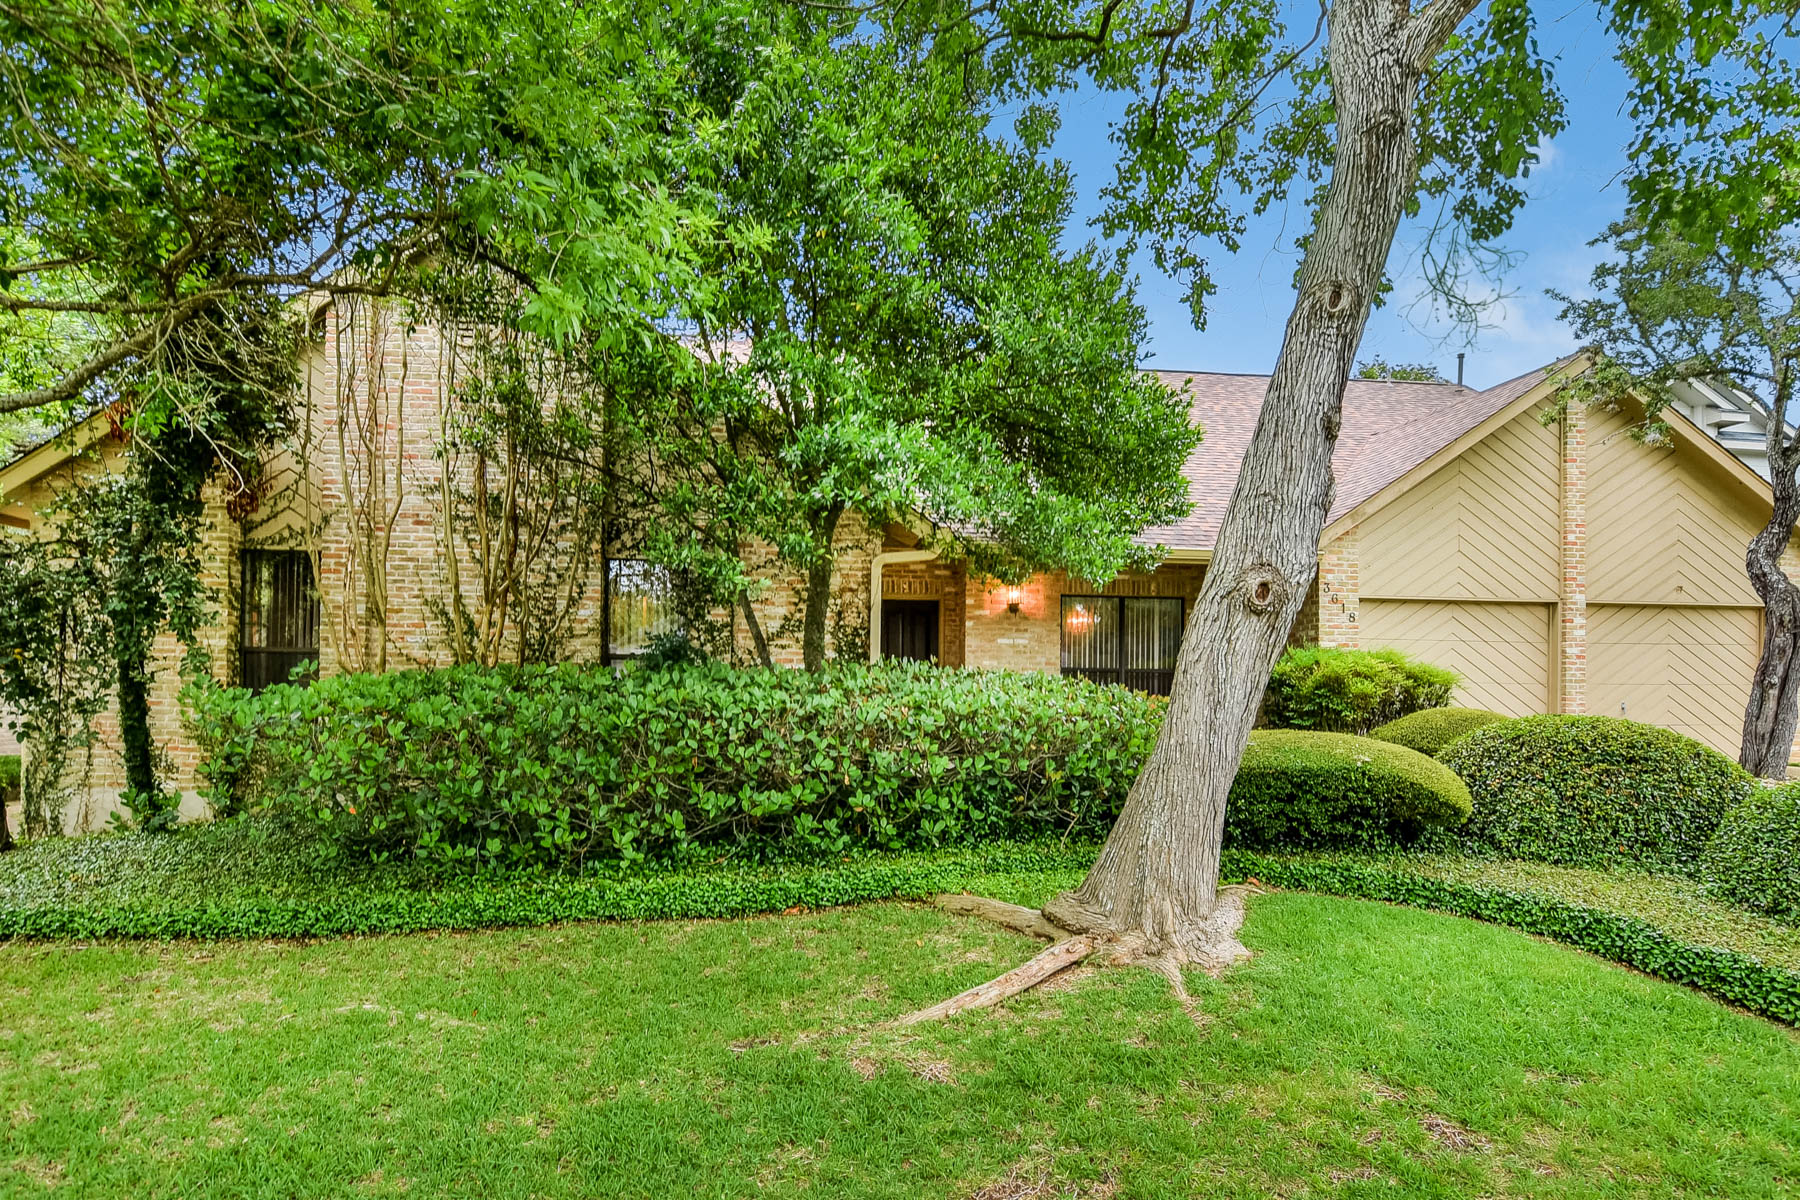 Single Family Home for Sale at Amazing Single Story in Hunters Creek 3618 Hunters Dream San Antonio, Texas 78230 United States